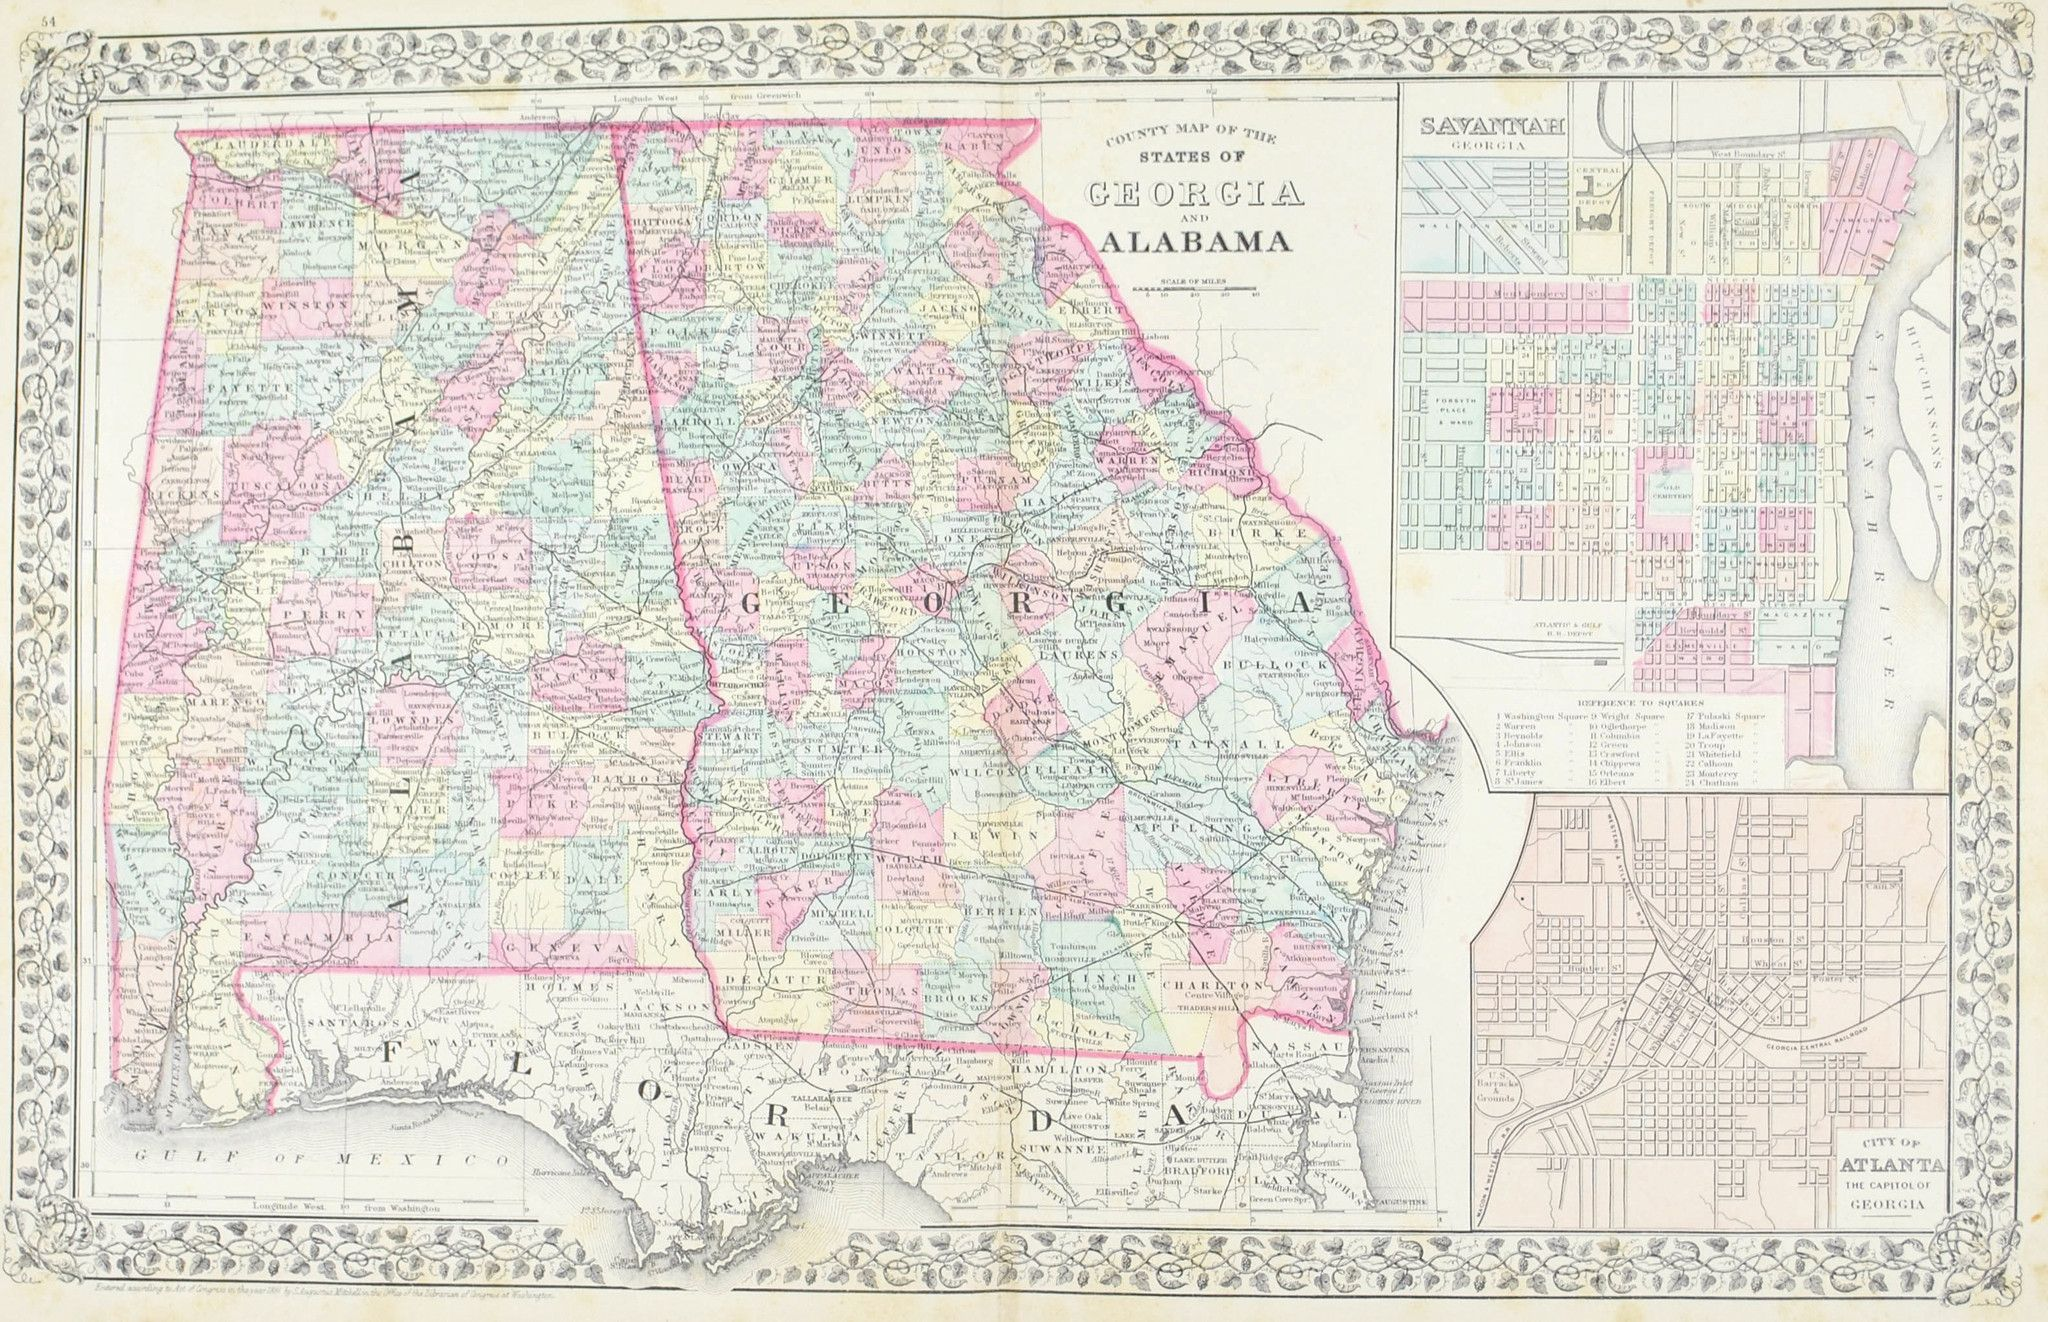 Georgia Alabama Antique Mitchell Map 1881 Products